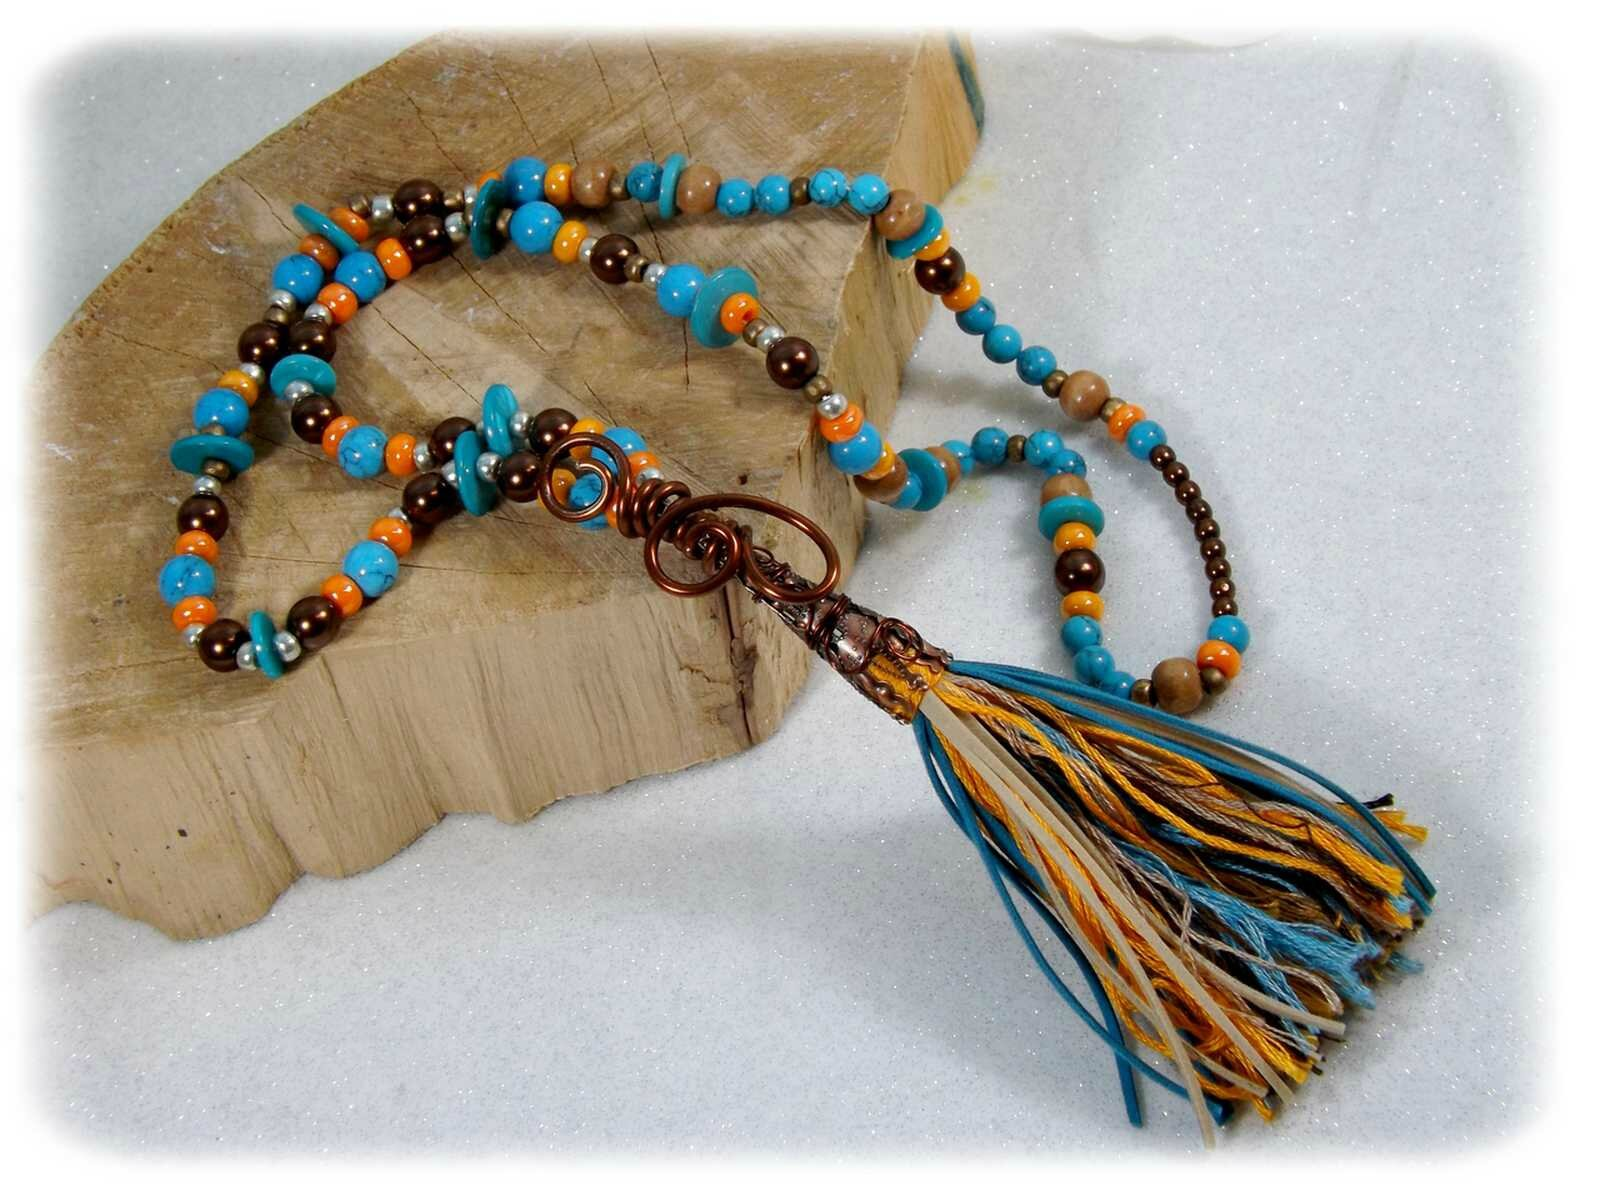 Collier country bohème perles pompon turquoise orange marron fait main